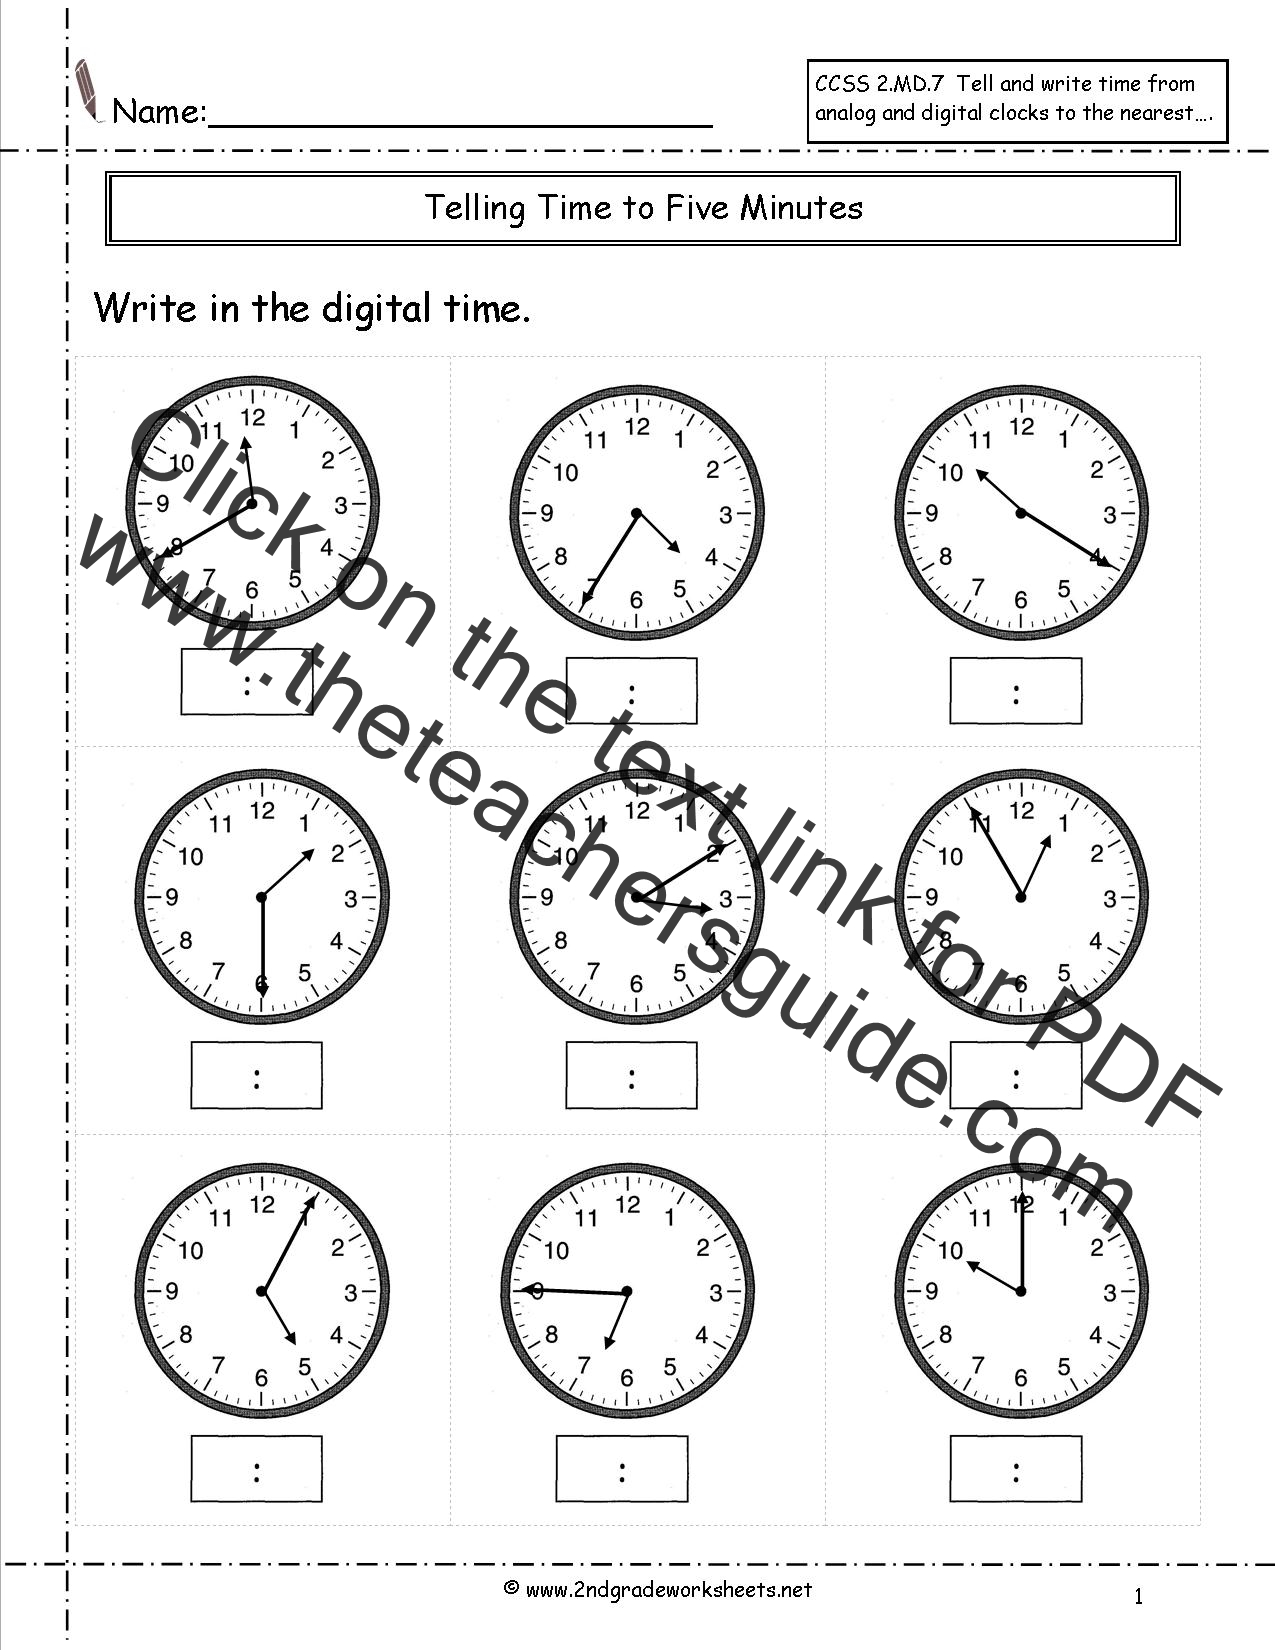 Uncategorized 2nd Grade Math Time Worksheets telling and writing time worksheets to nearest five minutes worksheet